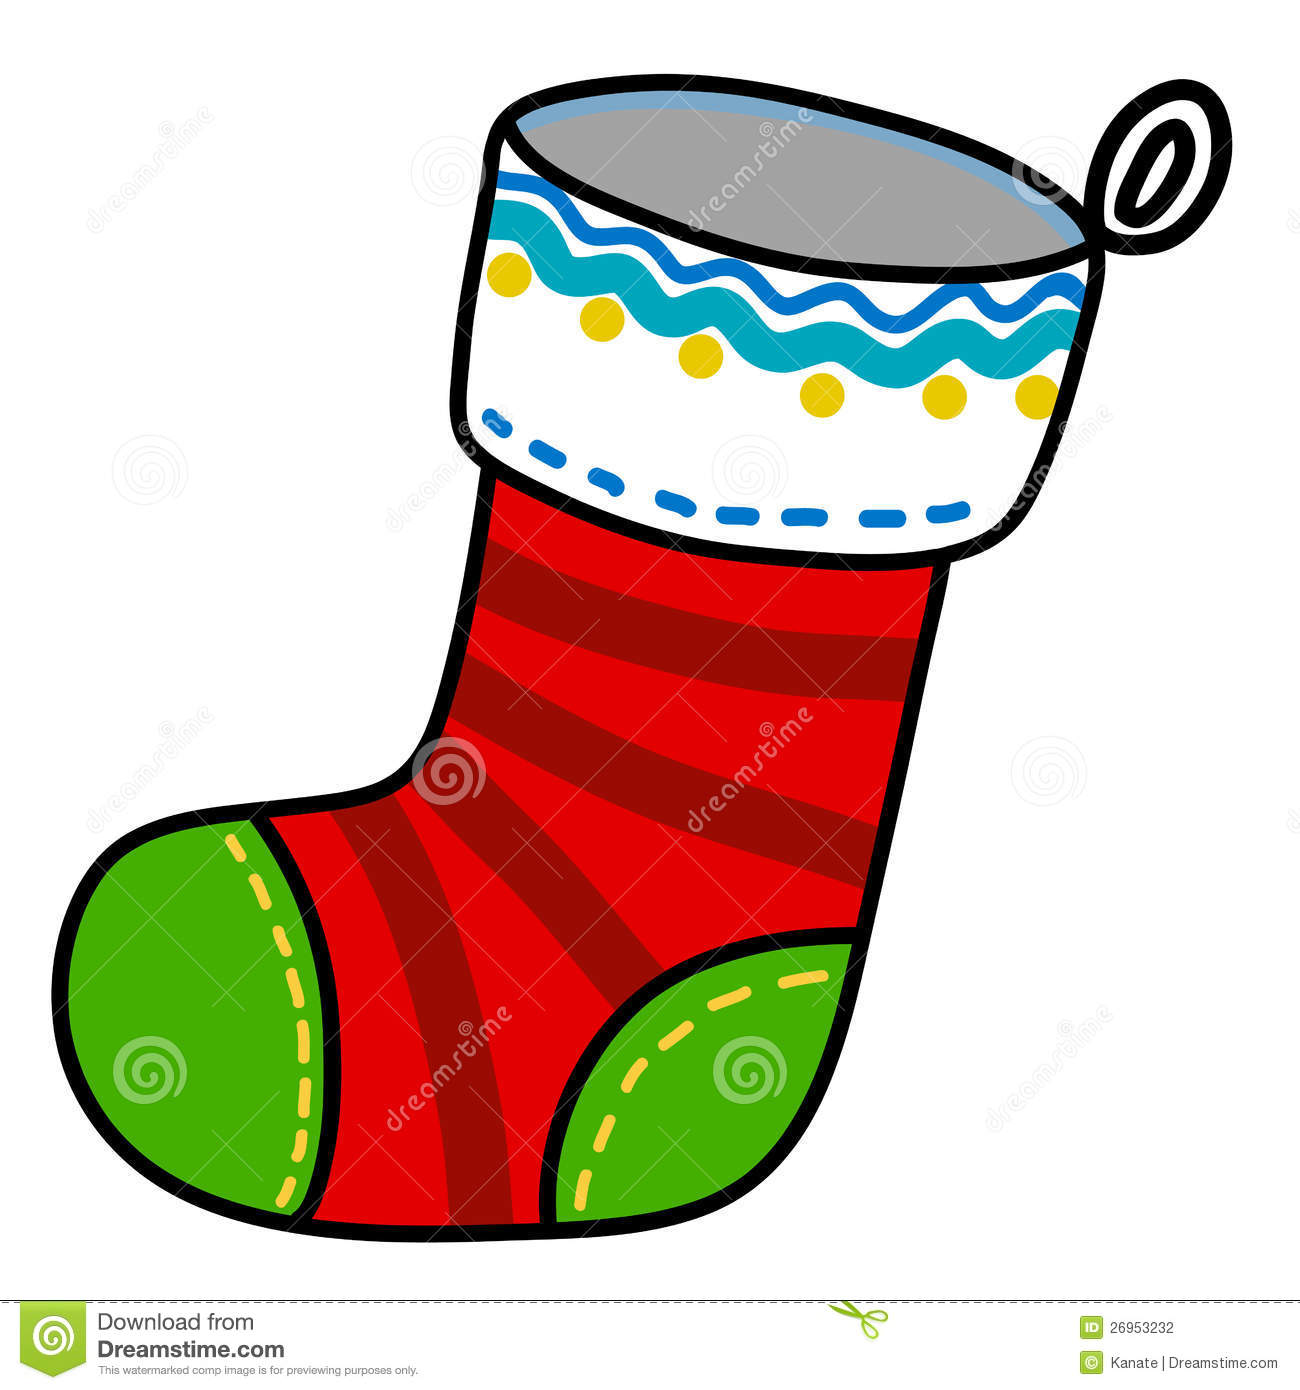 Christmas Stocking Images Free